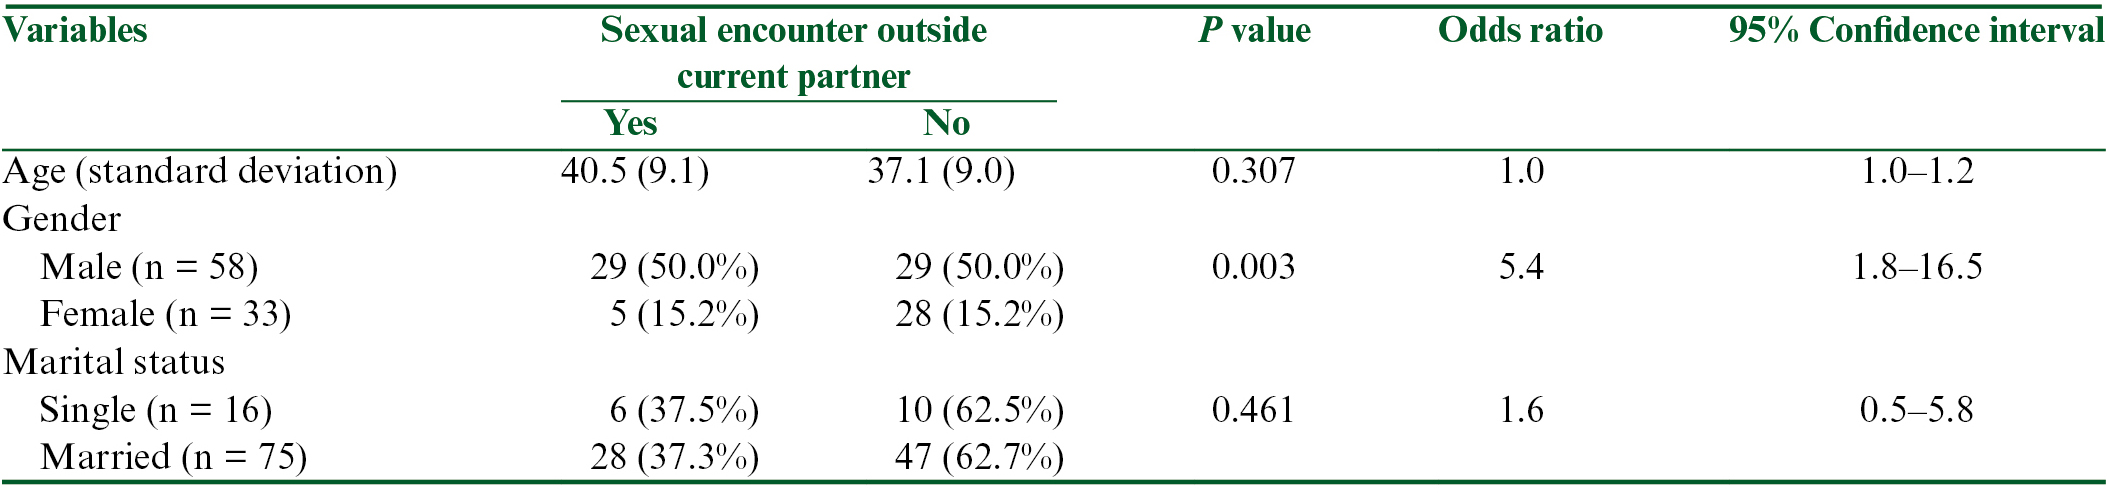 Table 4: The relationship between sociodemographic factors and sexual encounter outside current partner